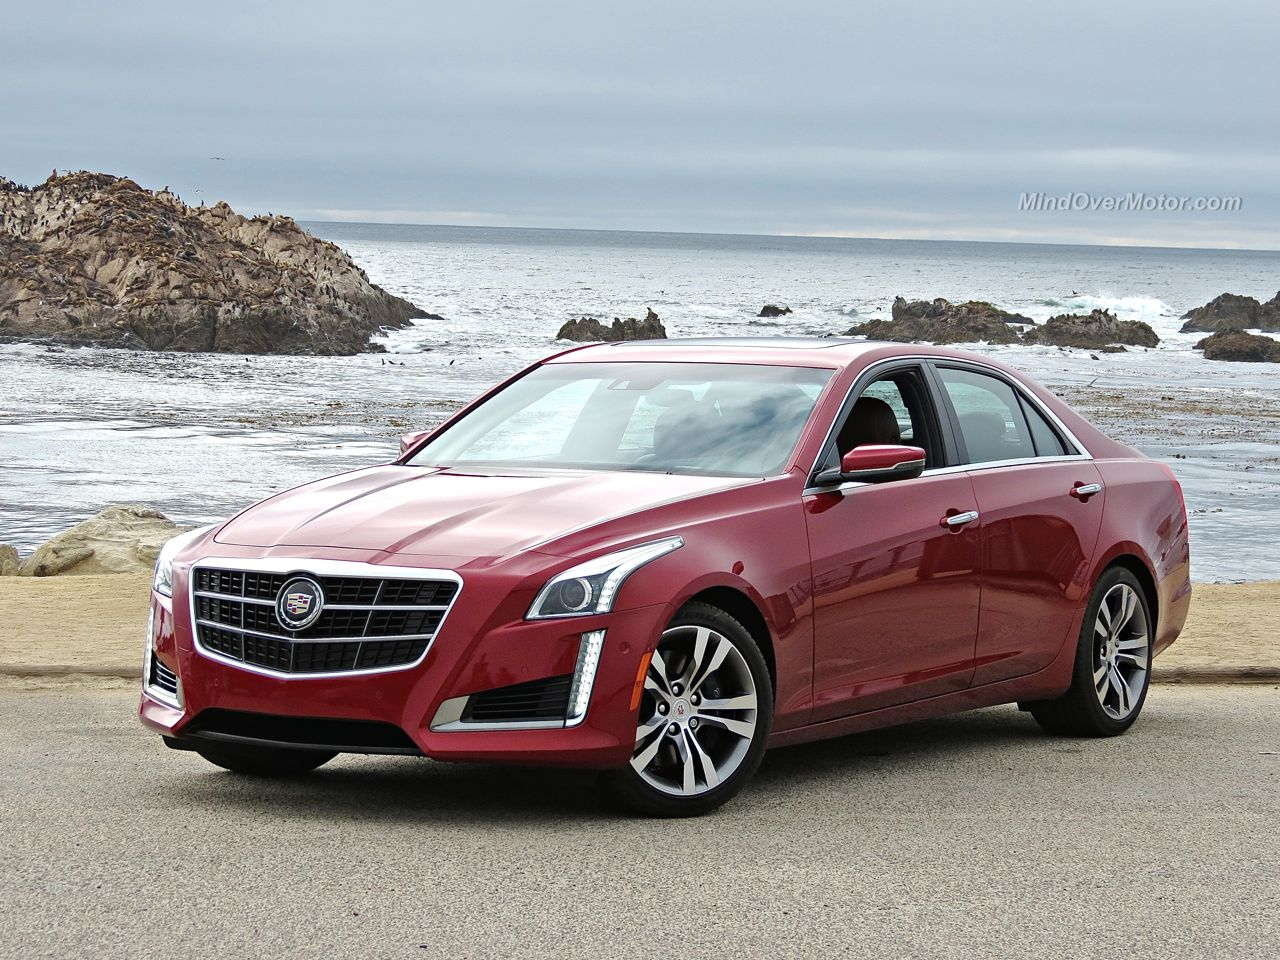 2015 cadillac cts vsport review mind over motor. Black Bedroom Furniture Sets. Home Design Ideas